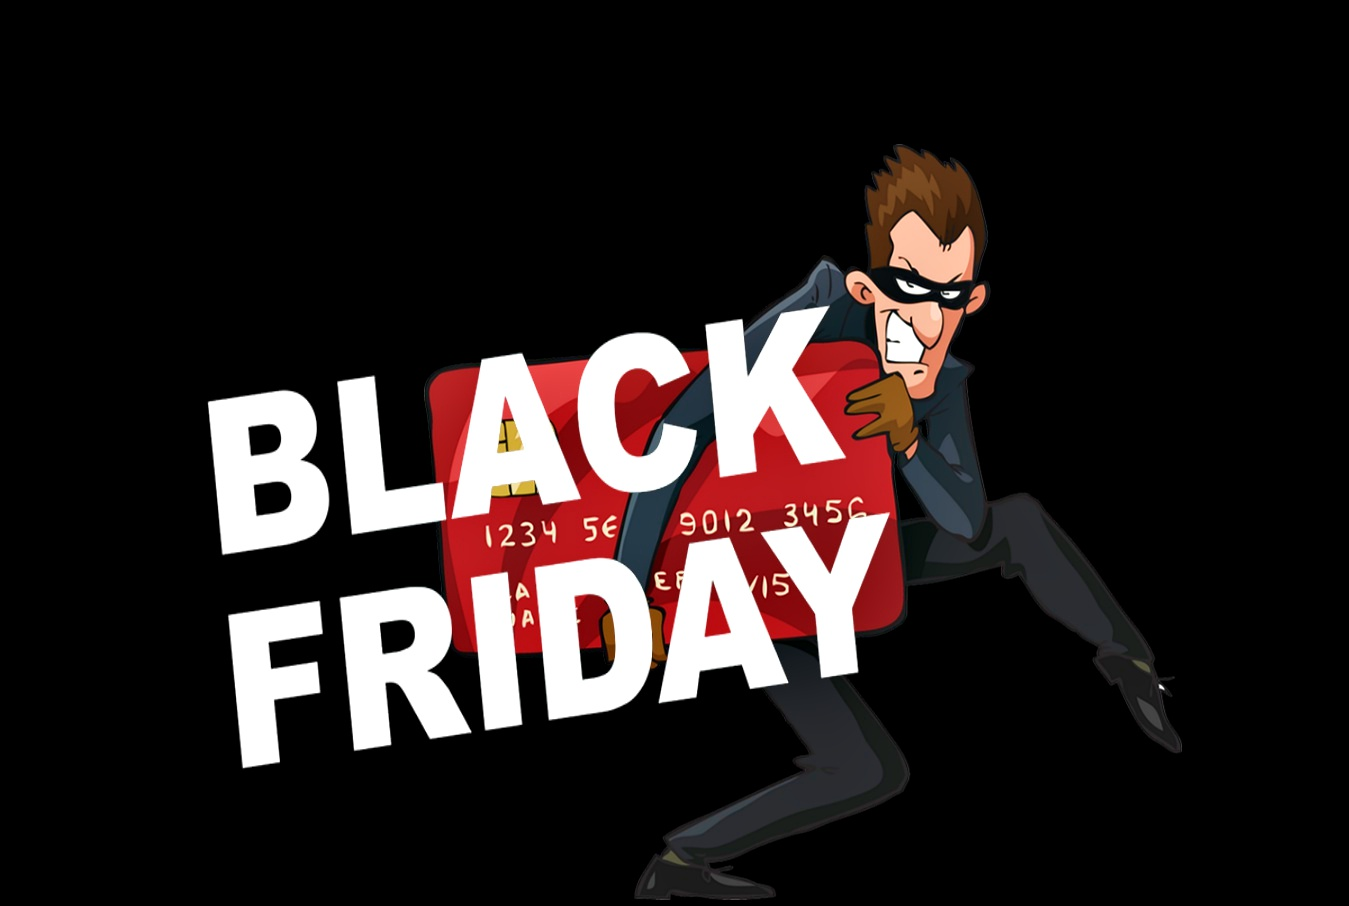 Black Fridax Black Friday Scams Shop Safely With These Tips